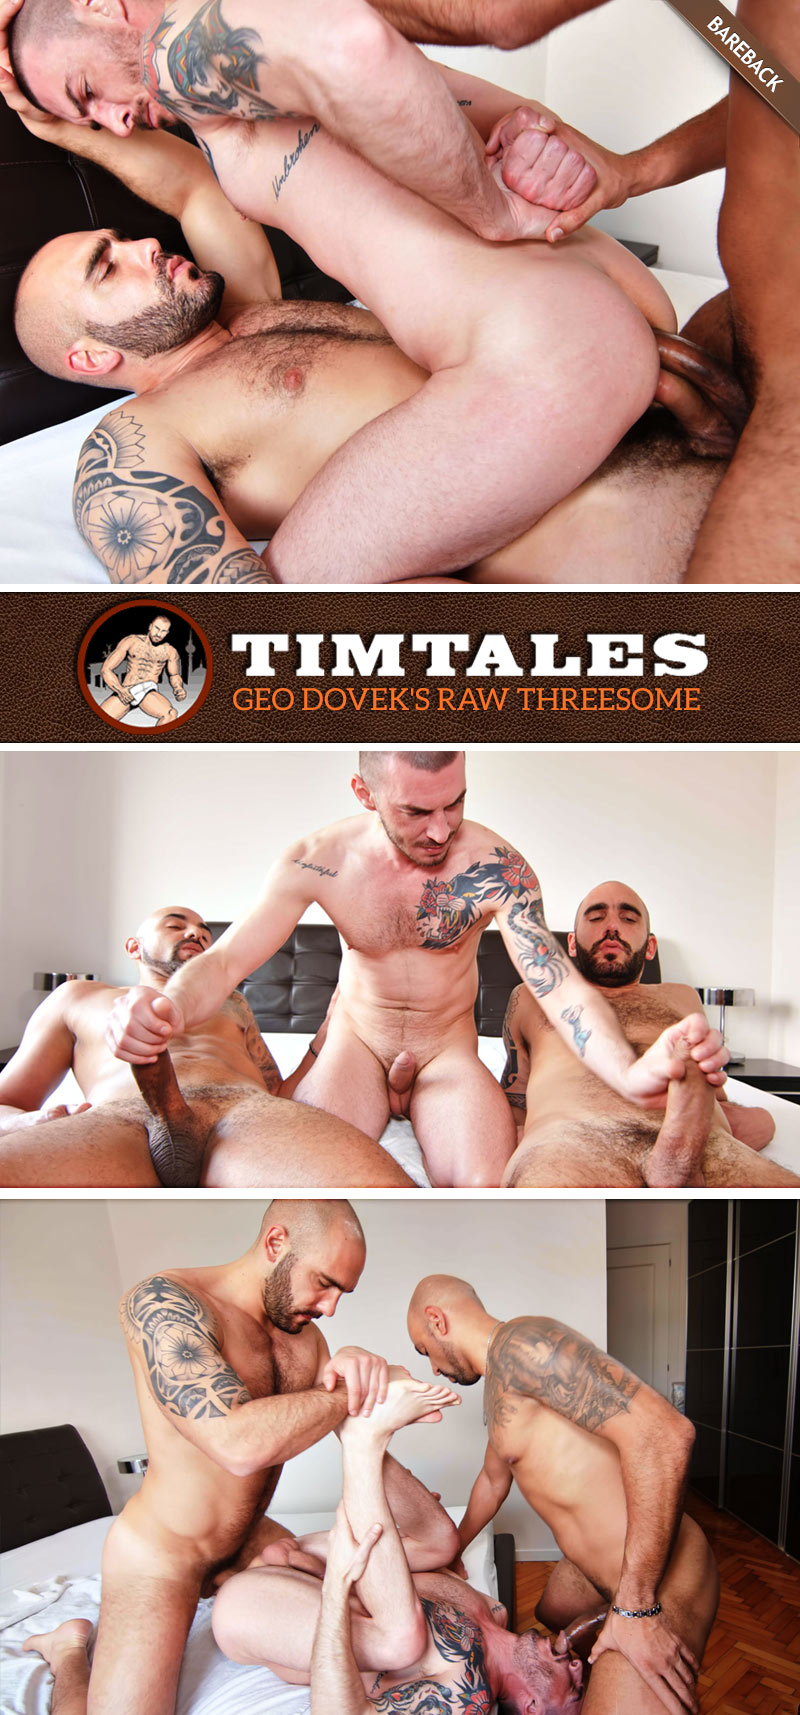 Geo Dovek's Raw Threesome (with Adam Sahar and Francisco Sants) at TimTales